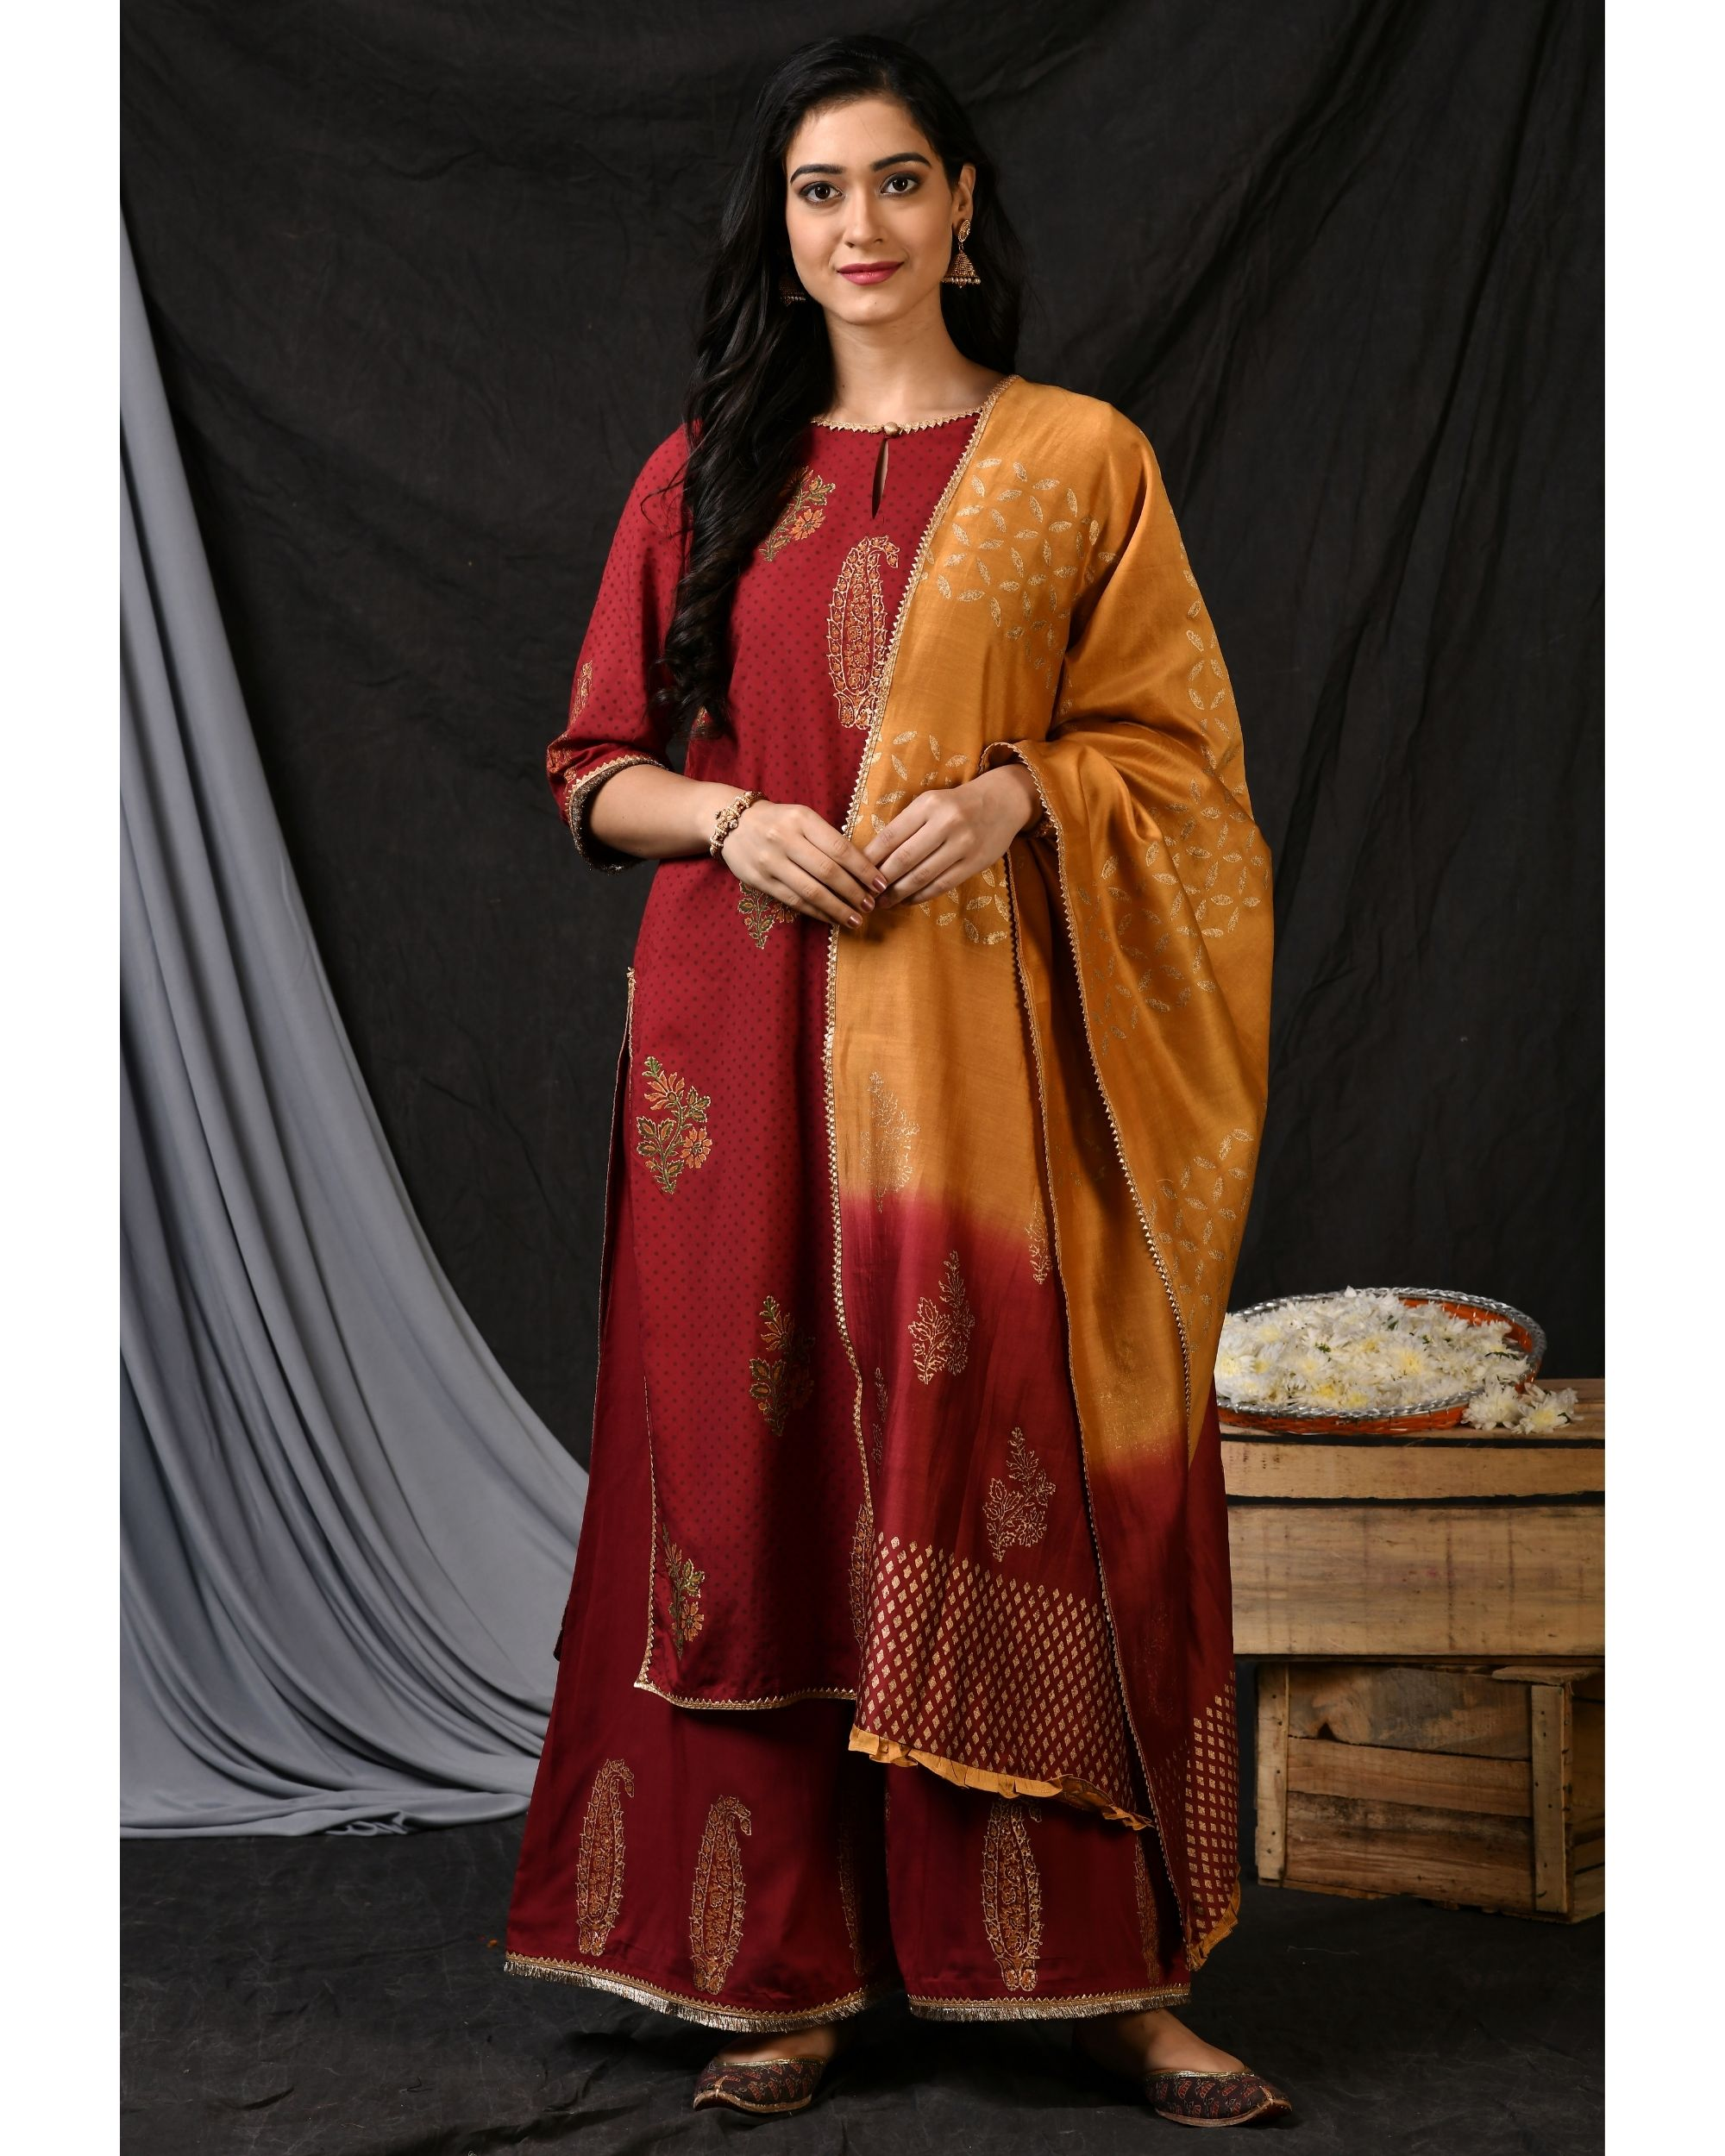 Mustard yellow and maroon block printed ombre dyed dupatta